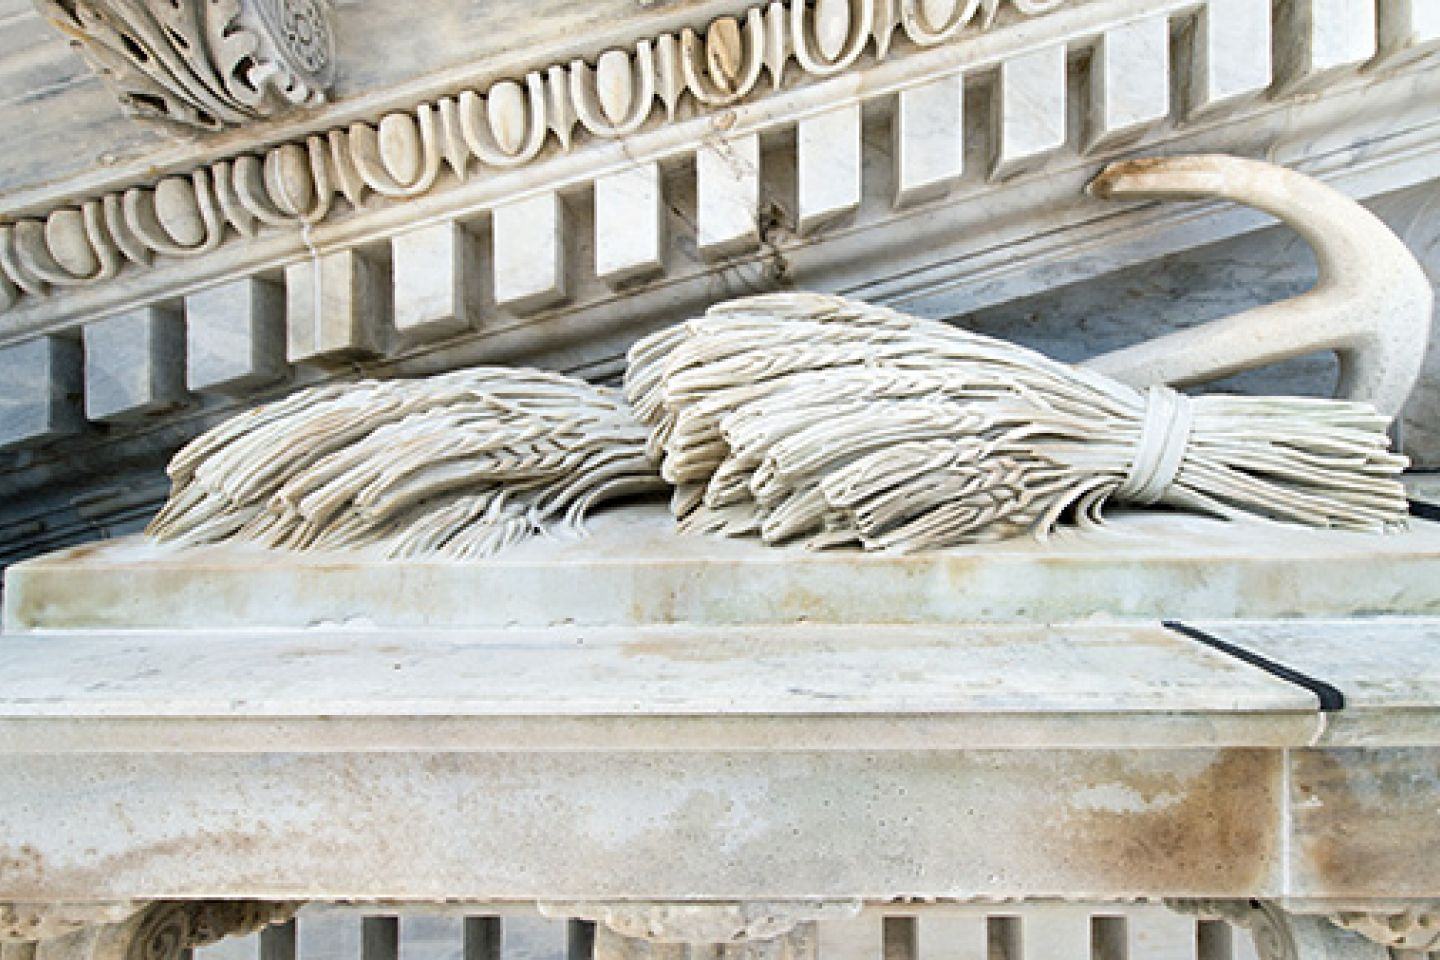 A close-up look at the wheat carved as part of the Progress of Civilization pediment on the Senate wing of the U.S. Capitol.